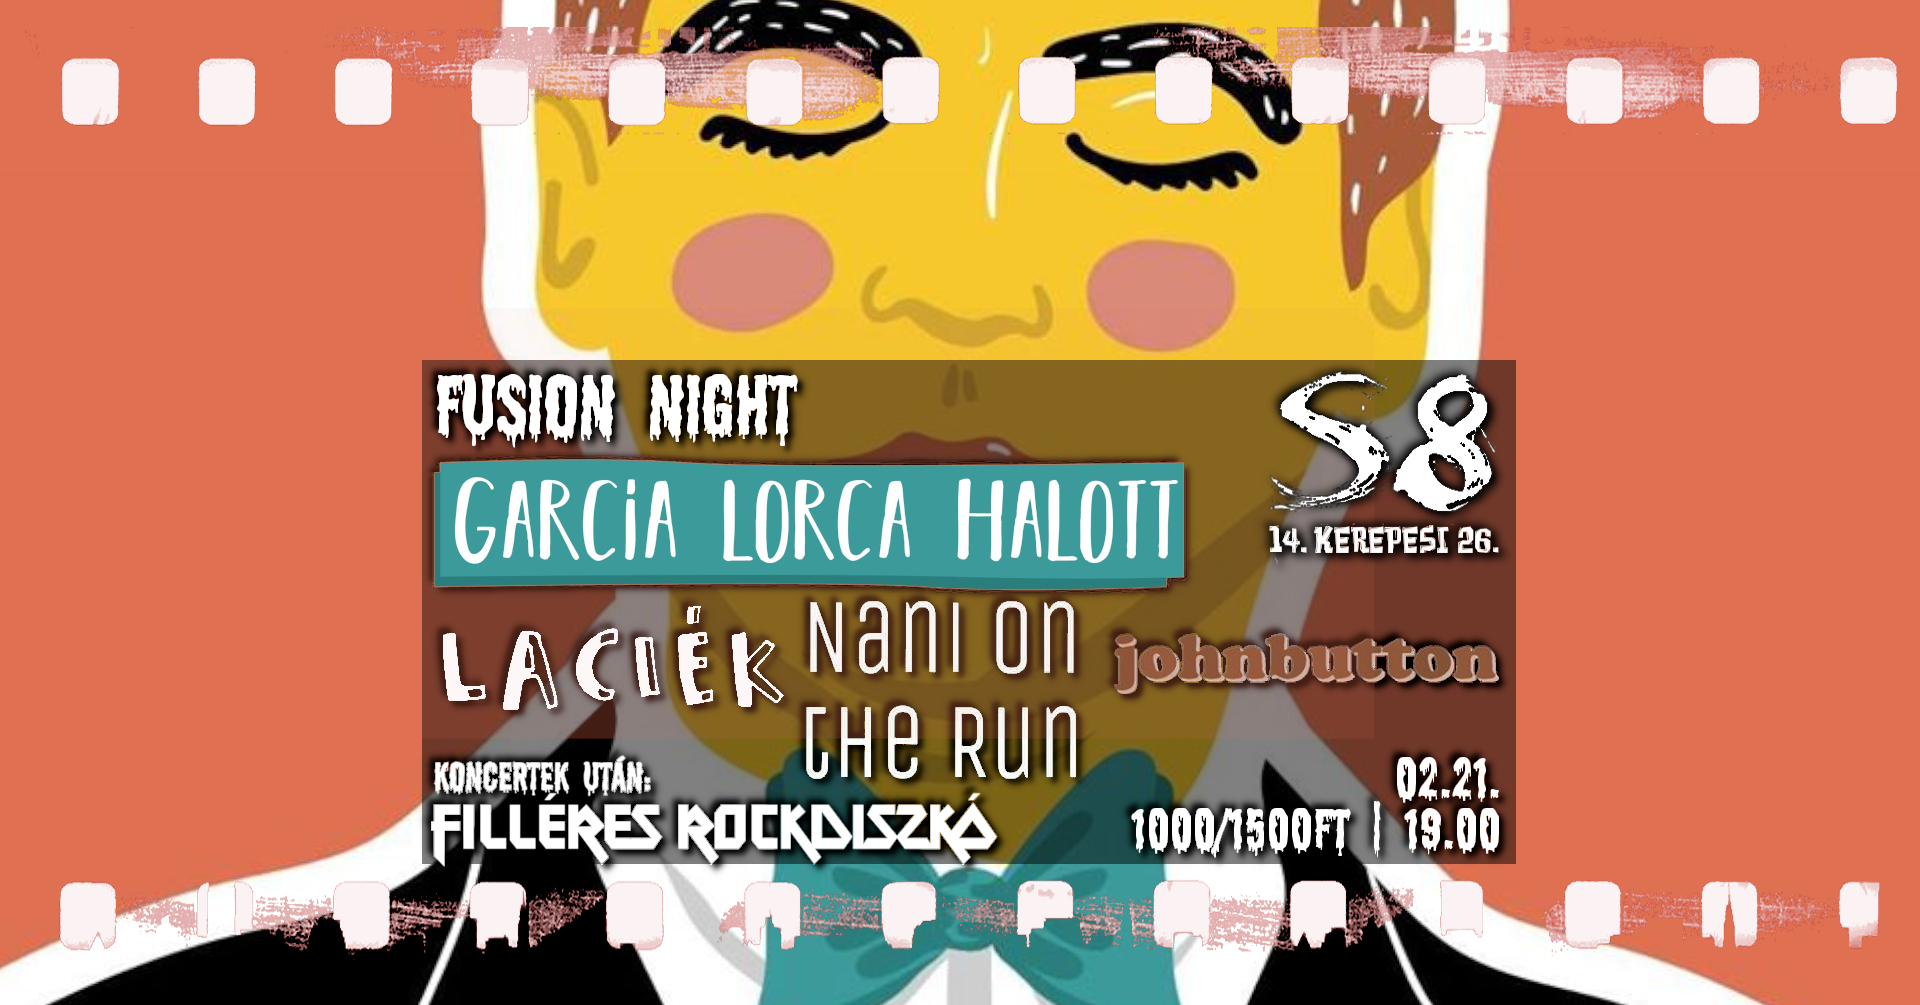 Fusion Night - García Lorca Halott I Laciék I Nani on the Run I johnbutton